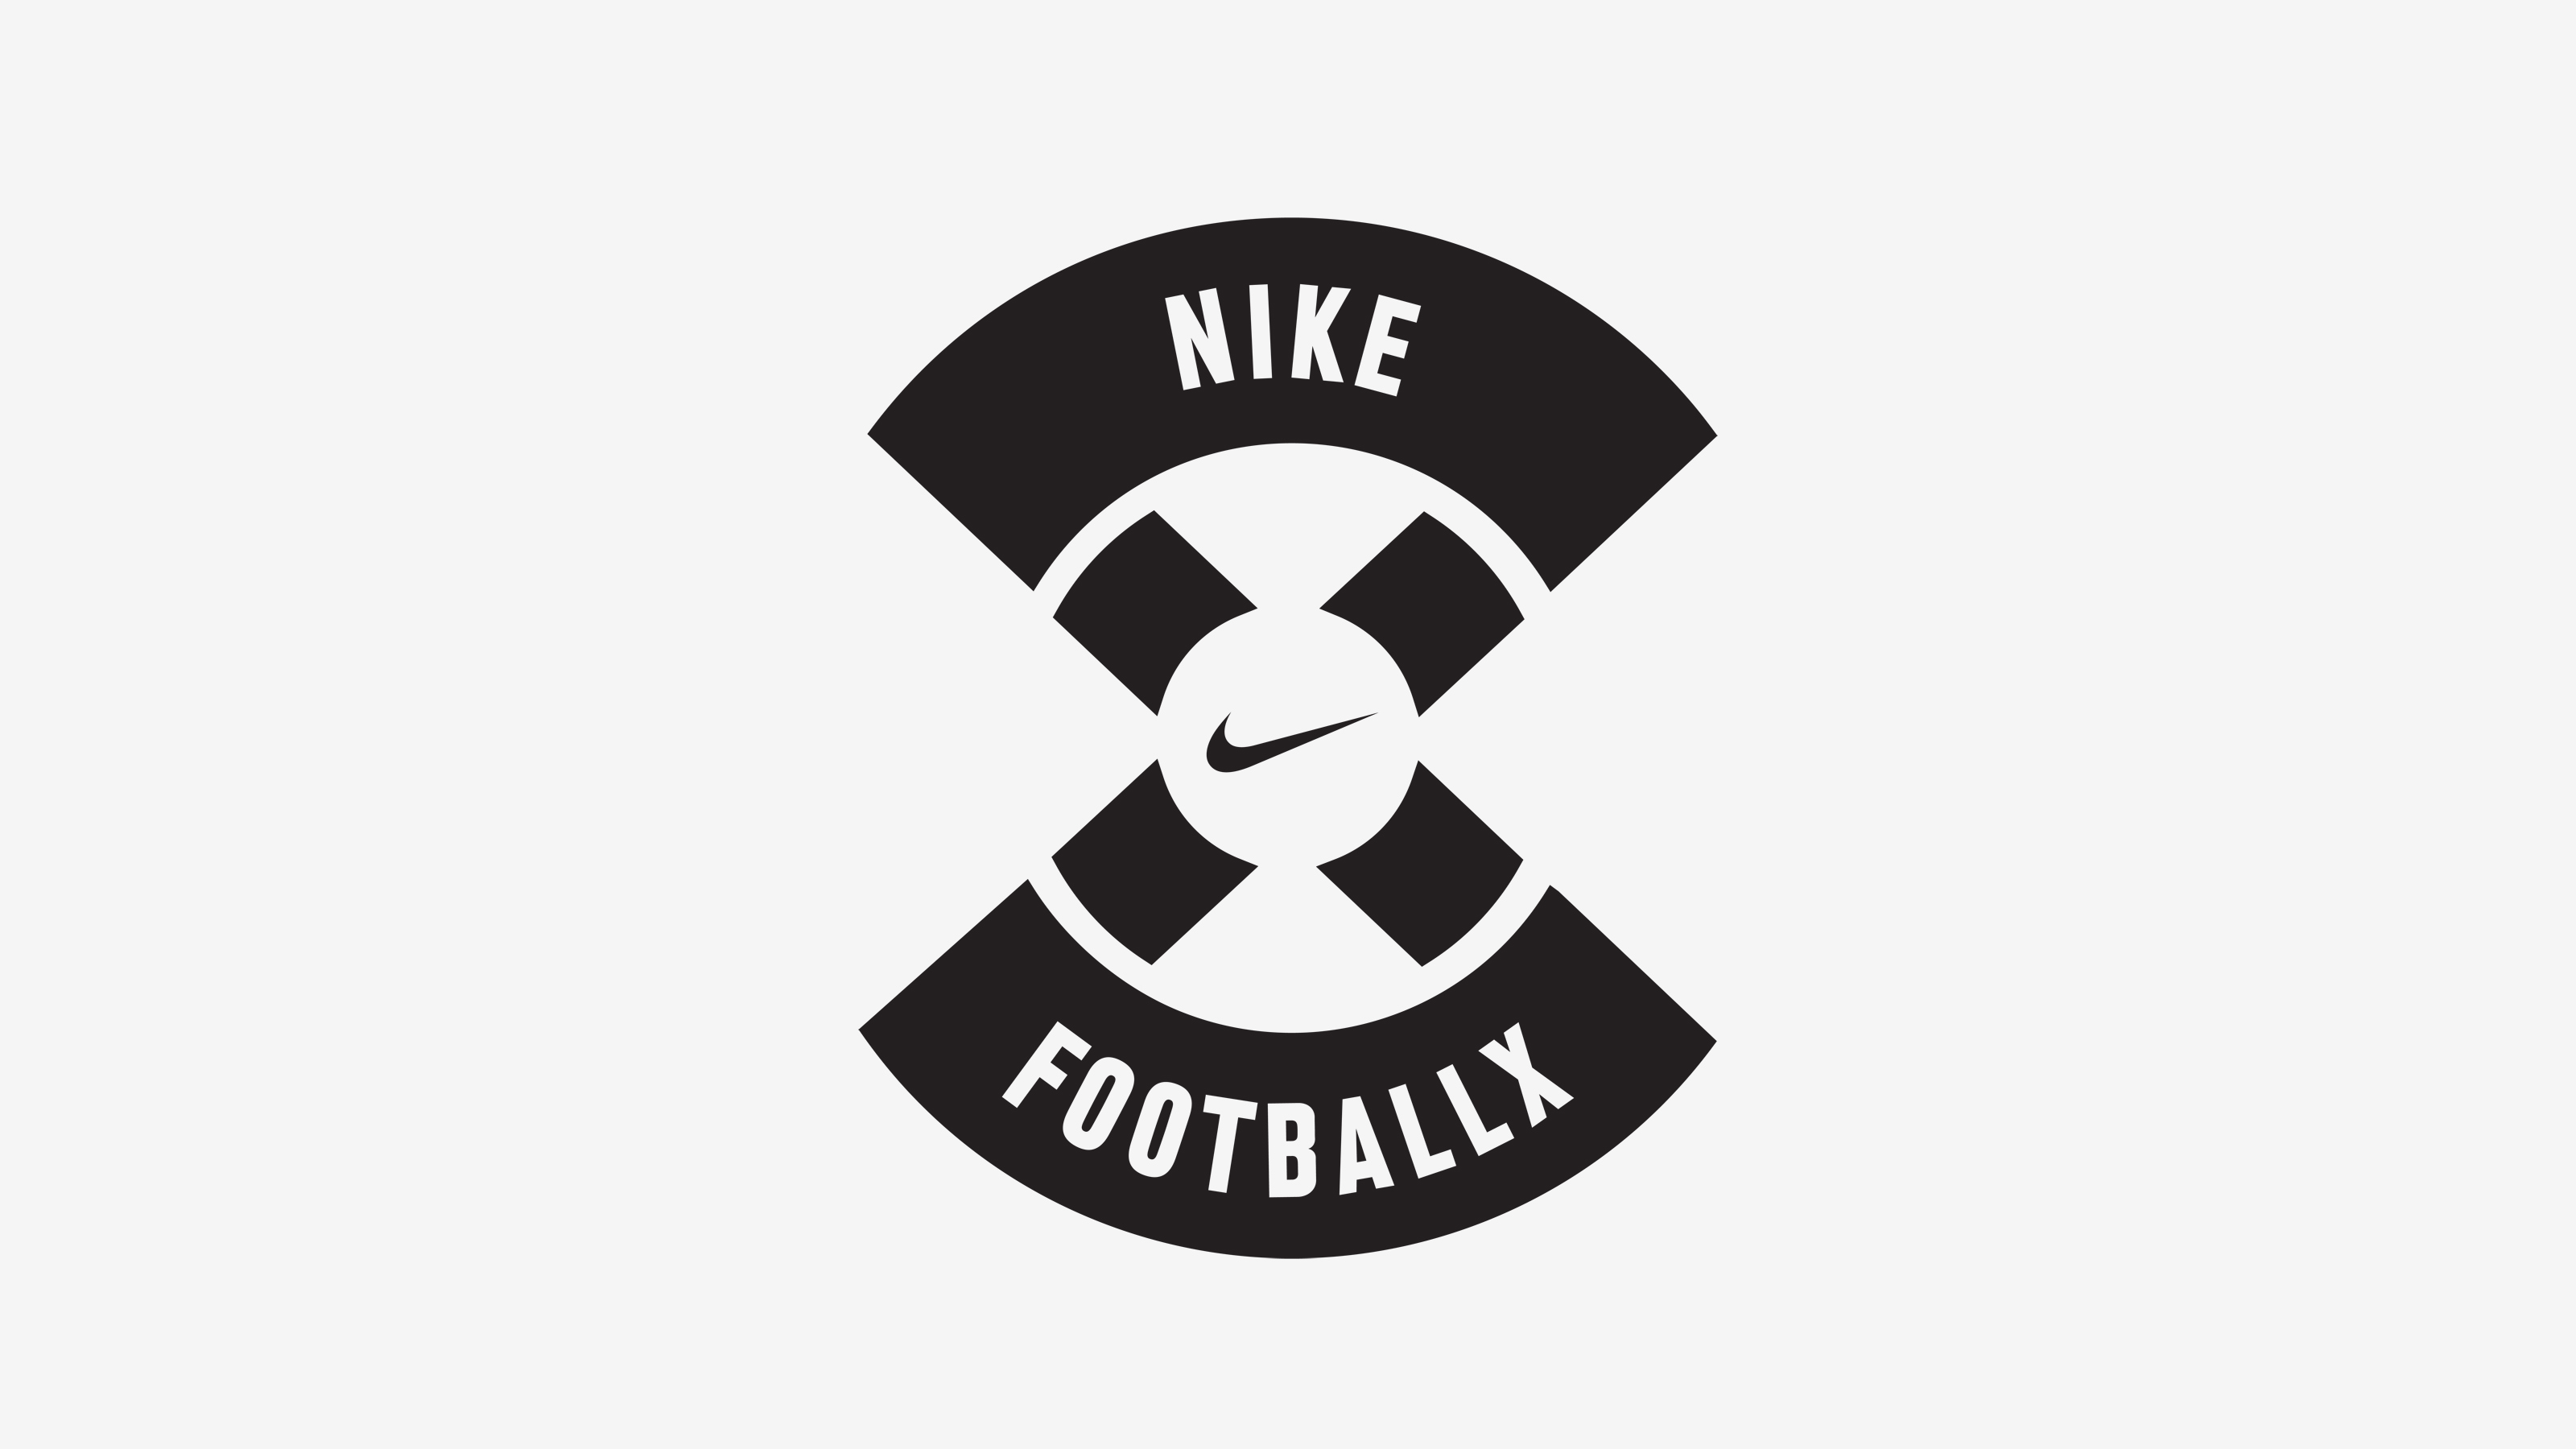 Nike risk everything logo png